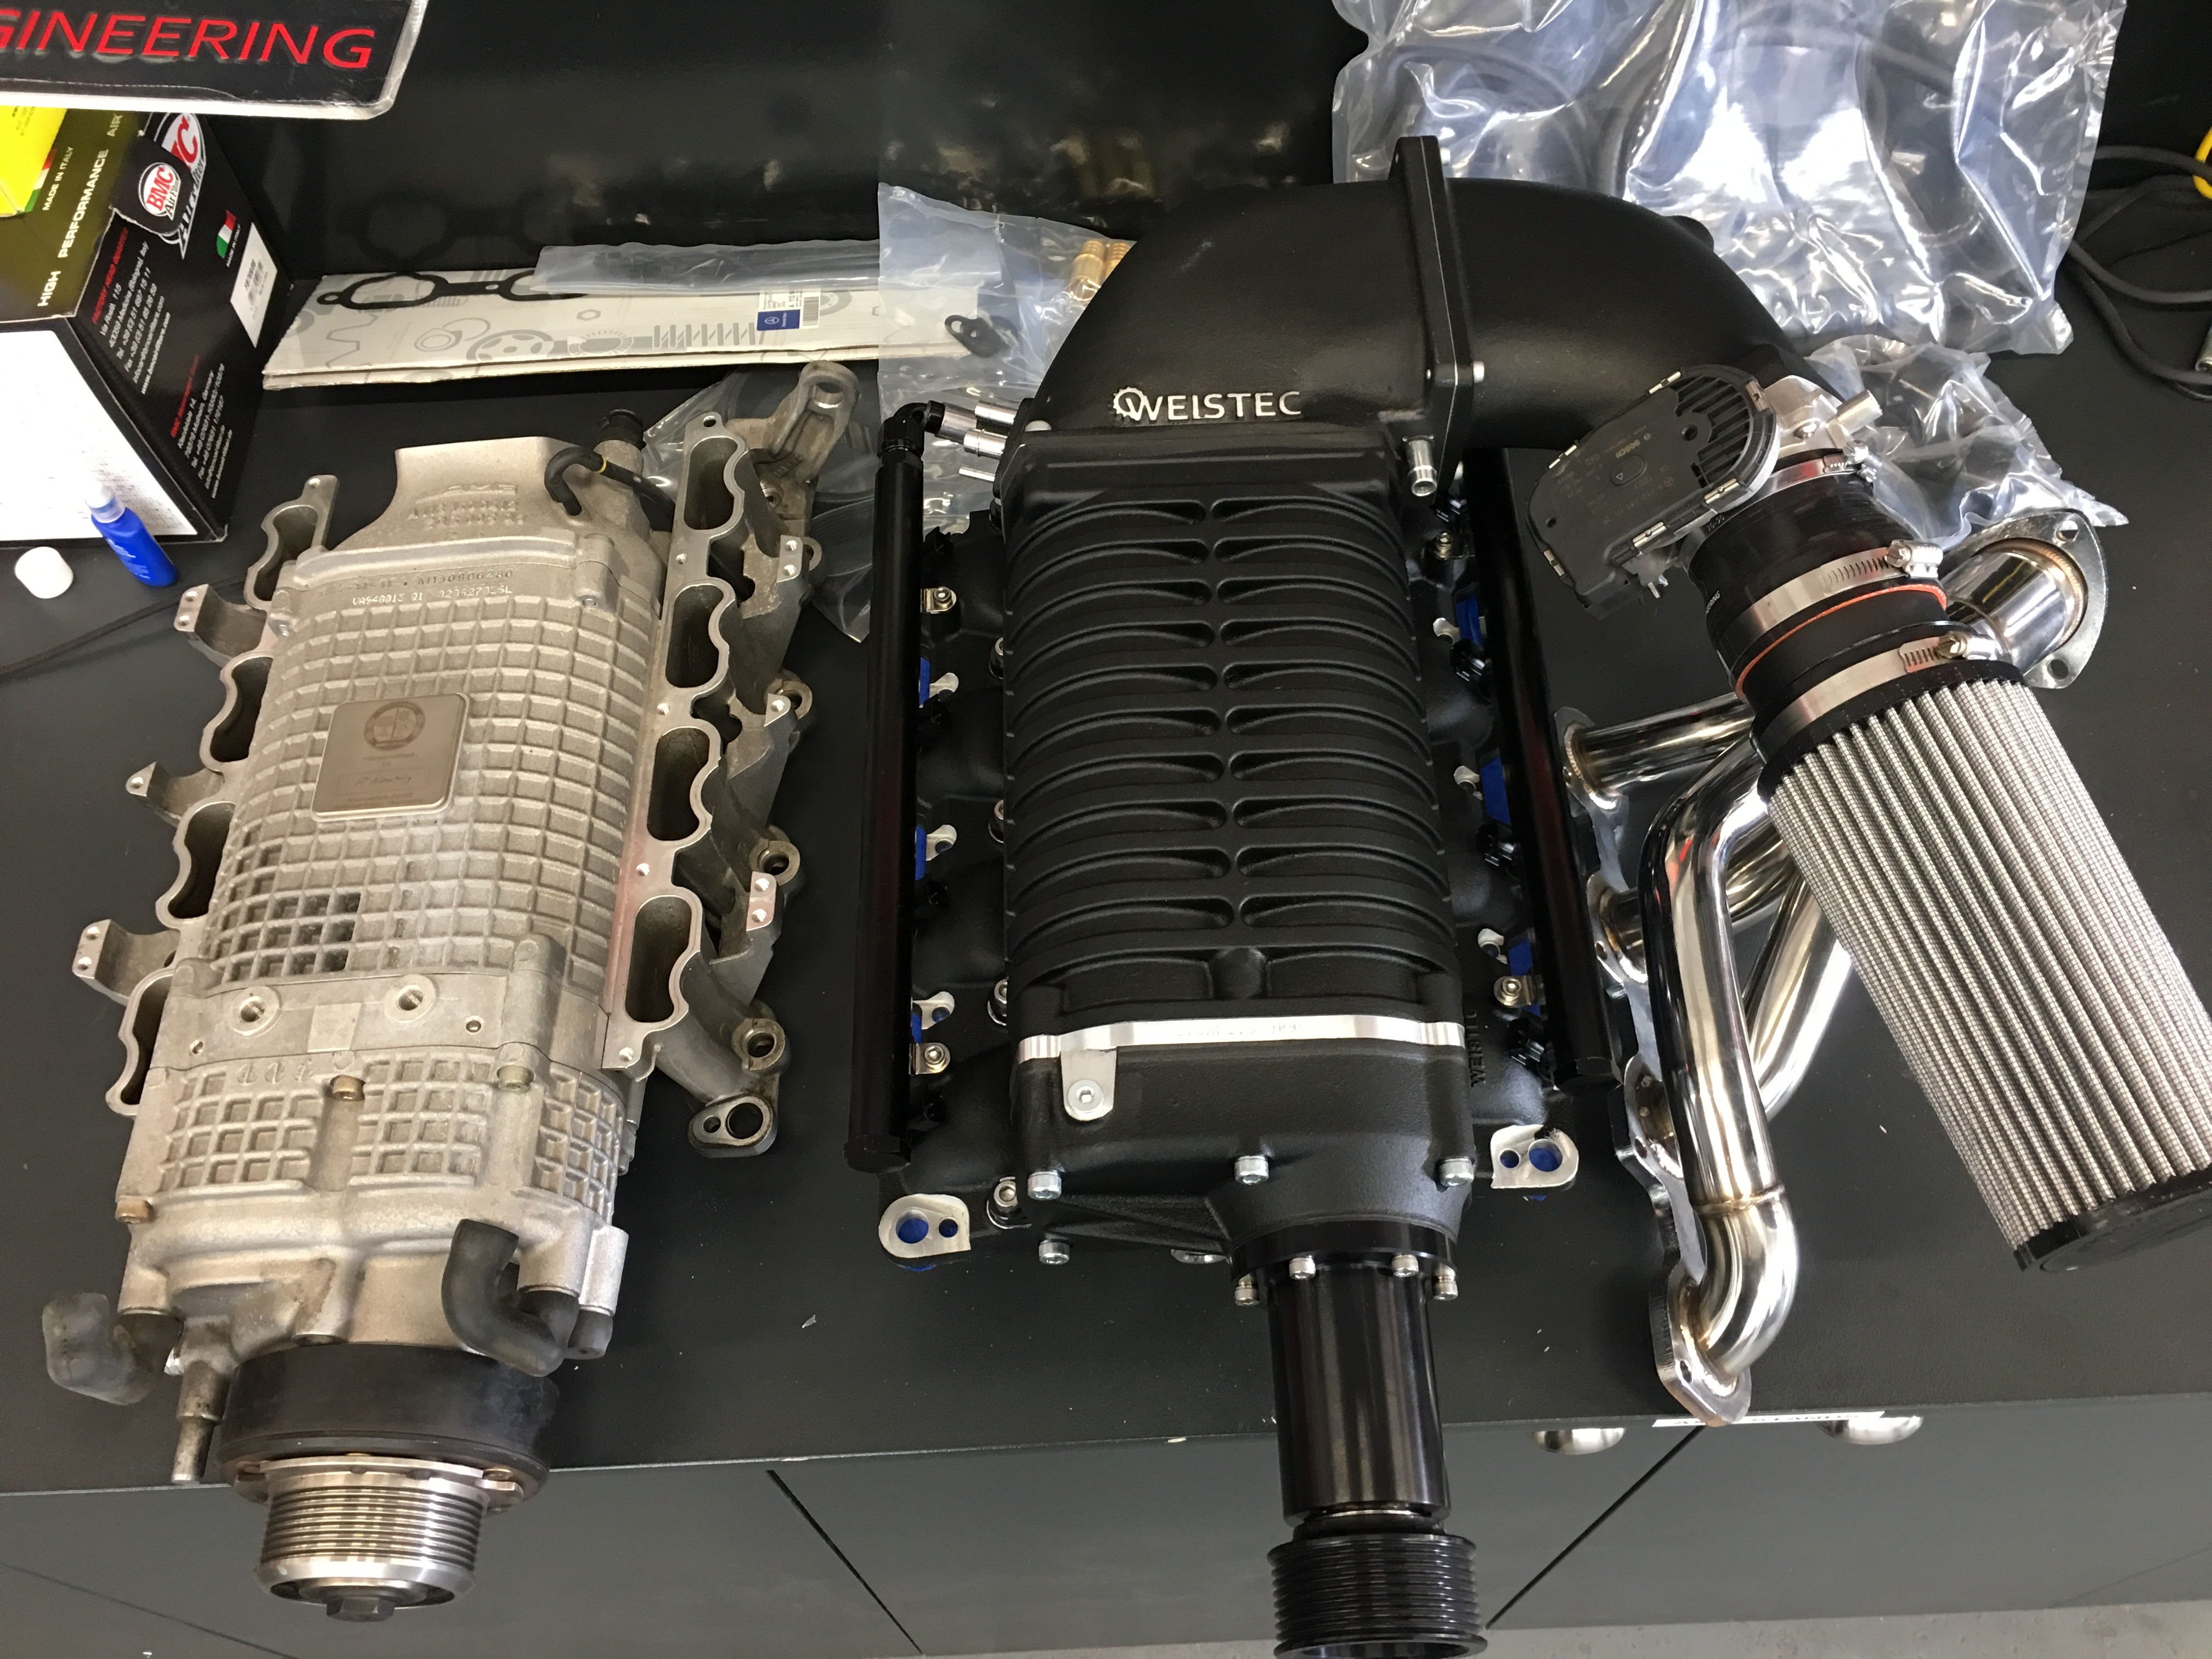 Mercedes SL 55 AMG, supercharger upgrade, stage 3, Weistec New